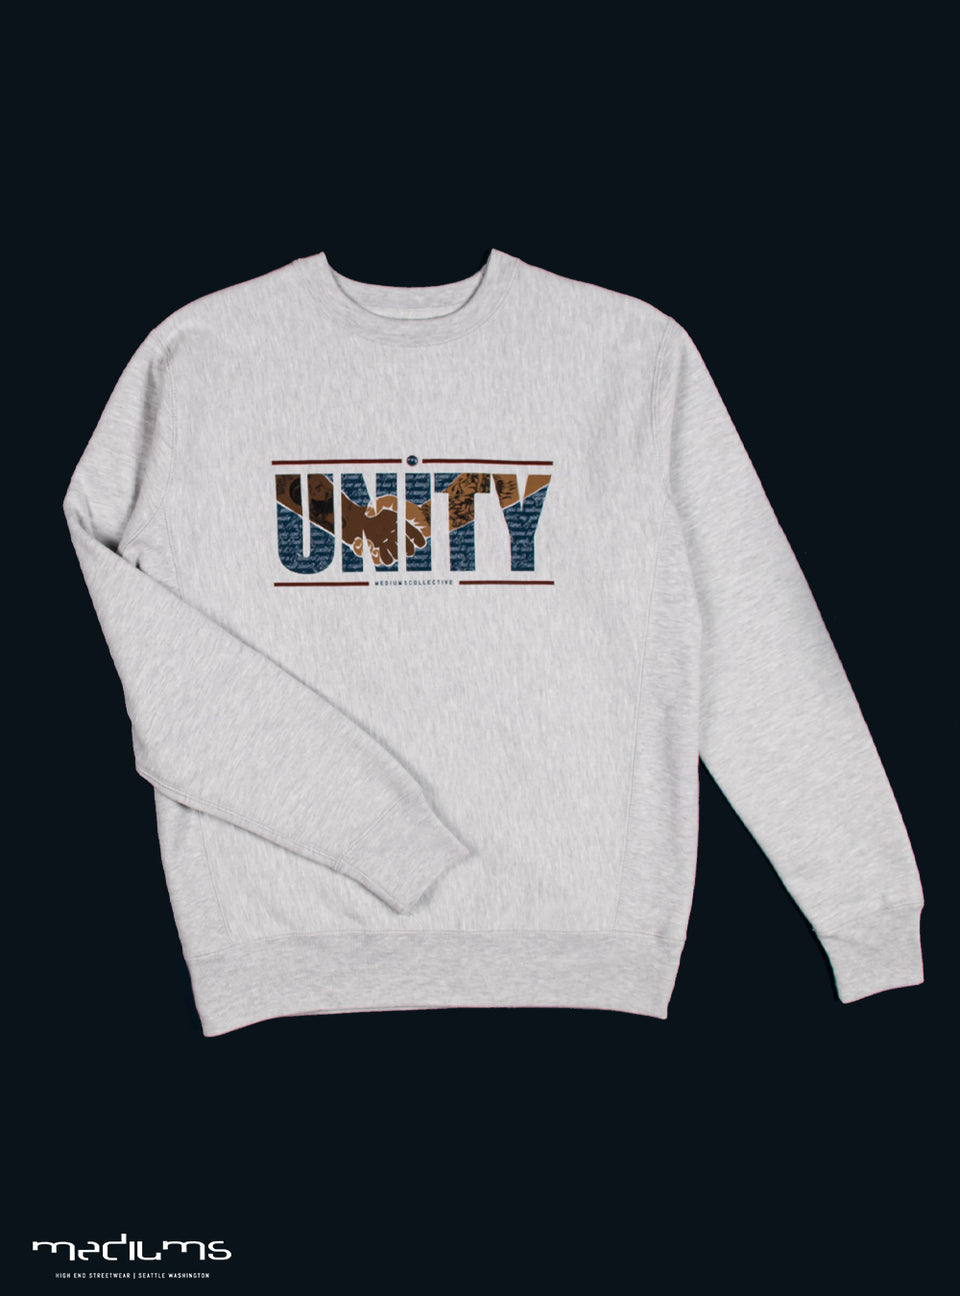 UNITY, sweatshirt, nipsey hussle, mexican culture, blm, black culture, black and brown, unidad, crewneck, heavyweight, gray heather, mediums collective, mediumscollective,